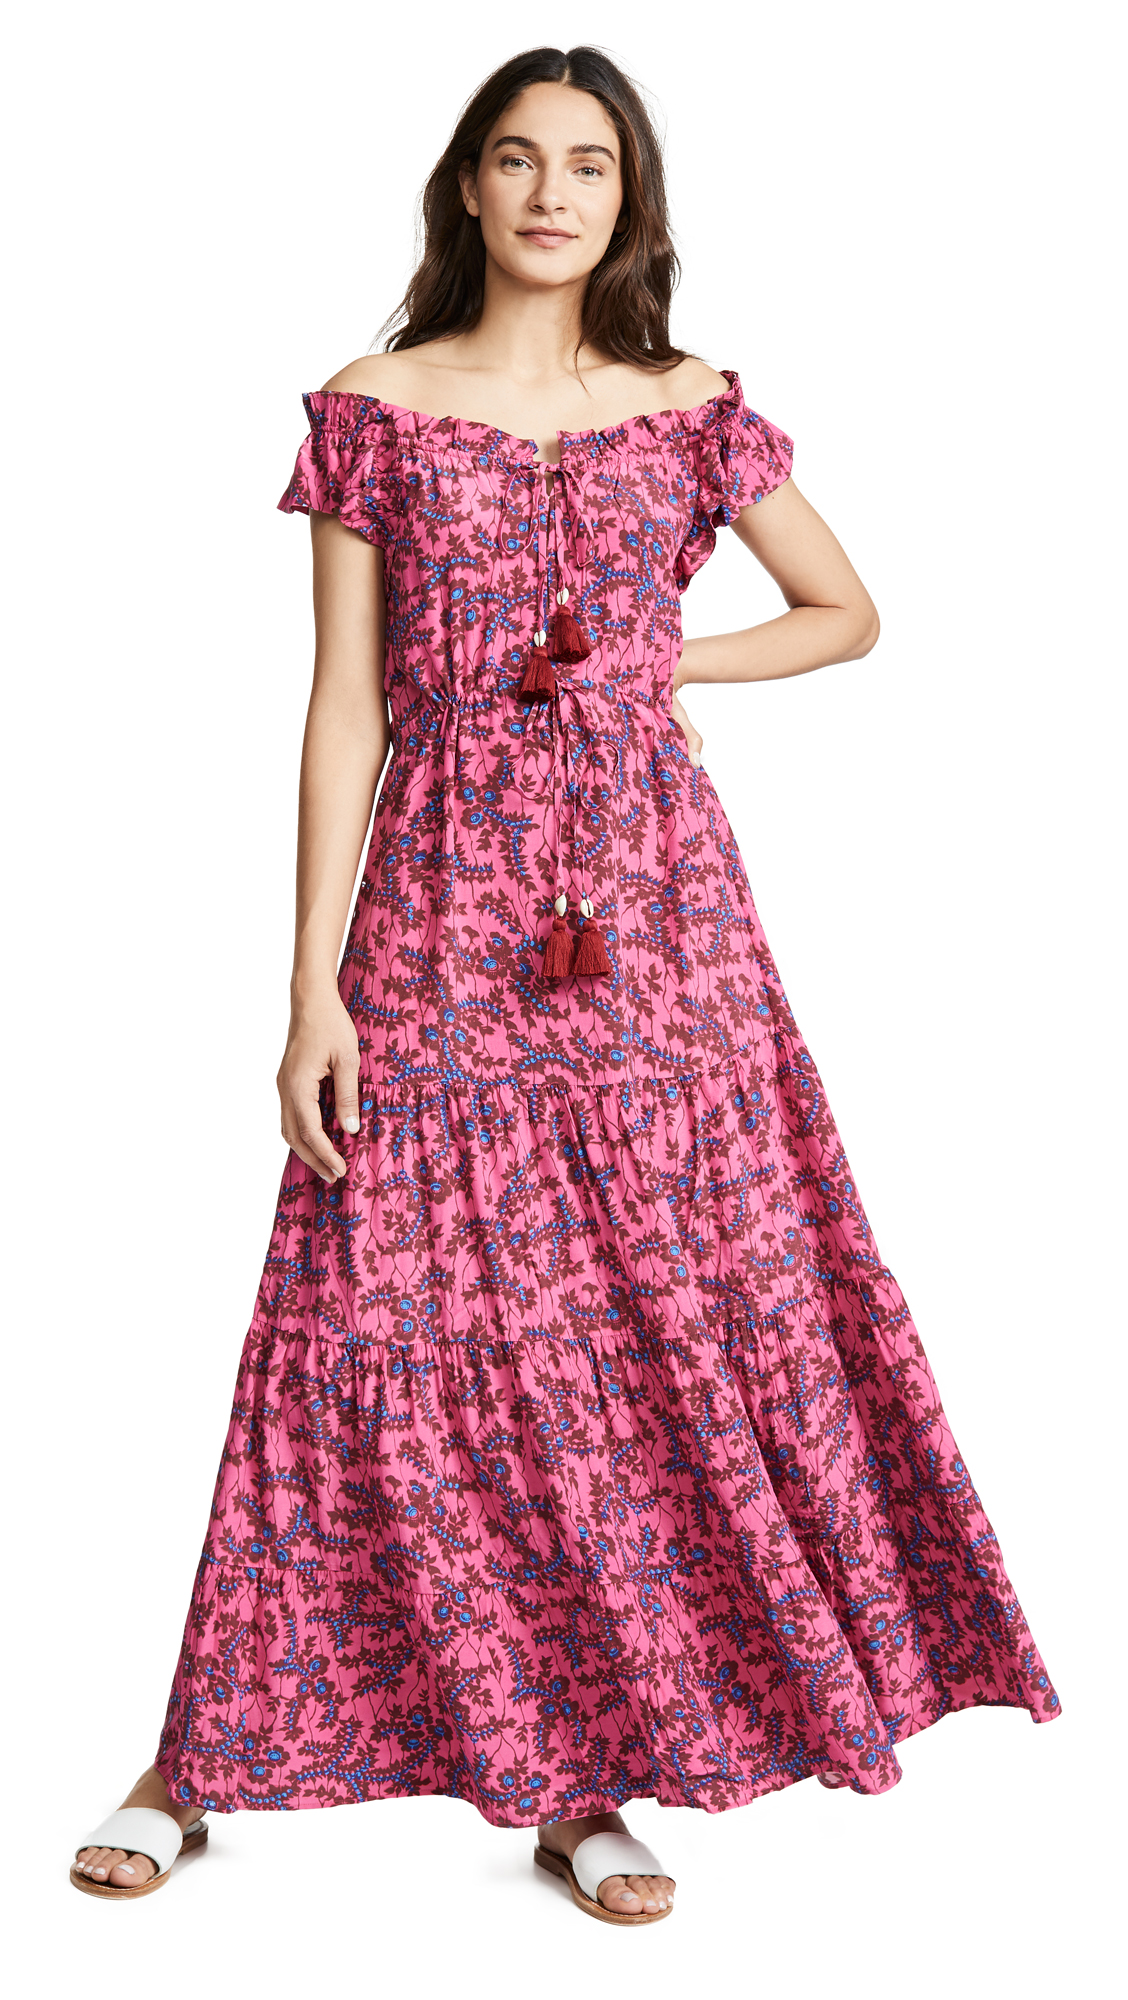 FIGUE Gianna Dress in Pink